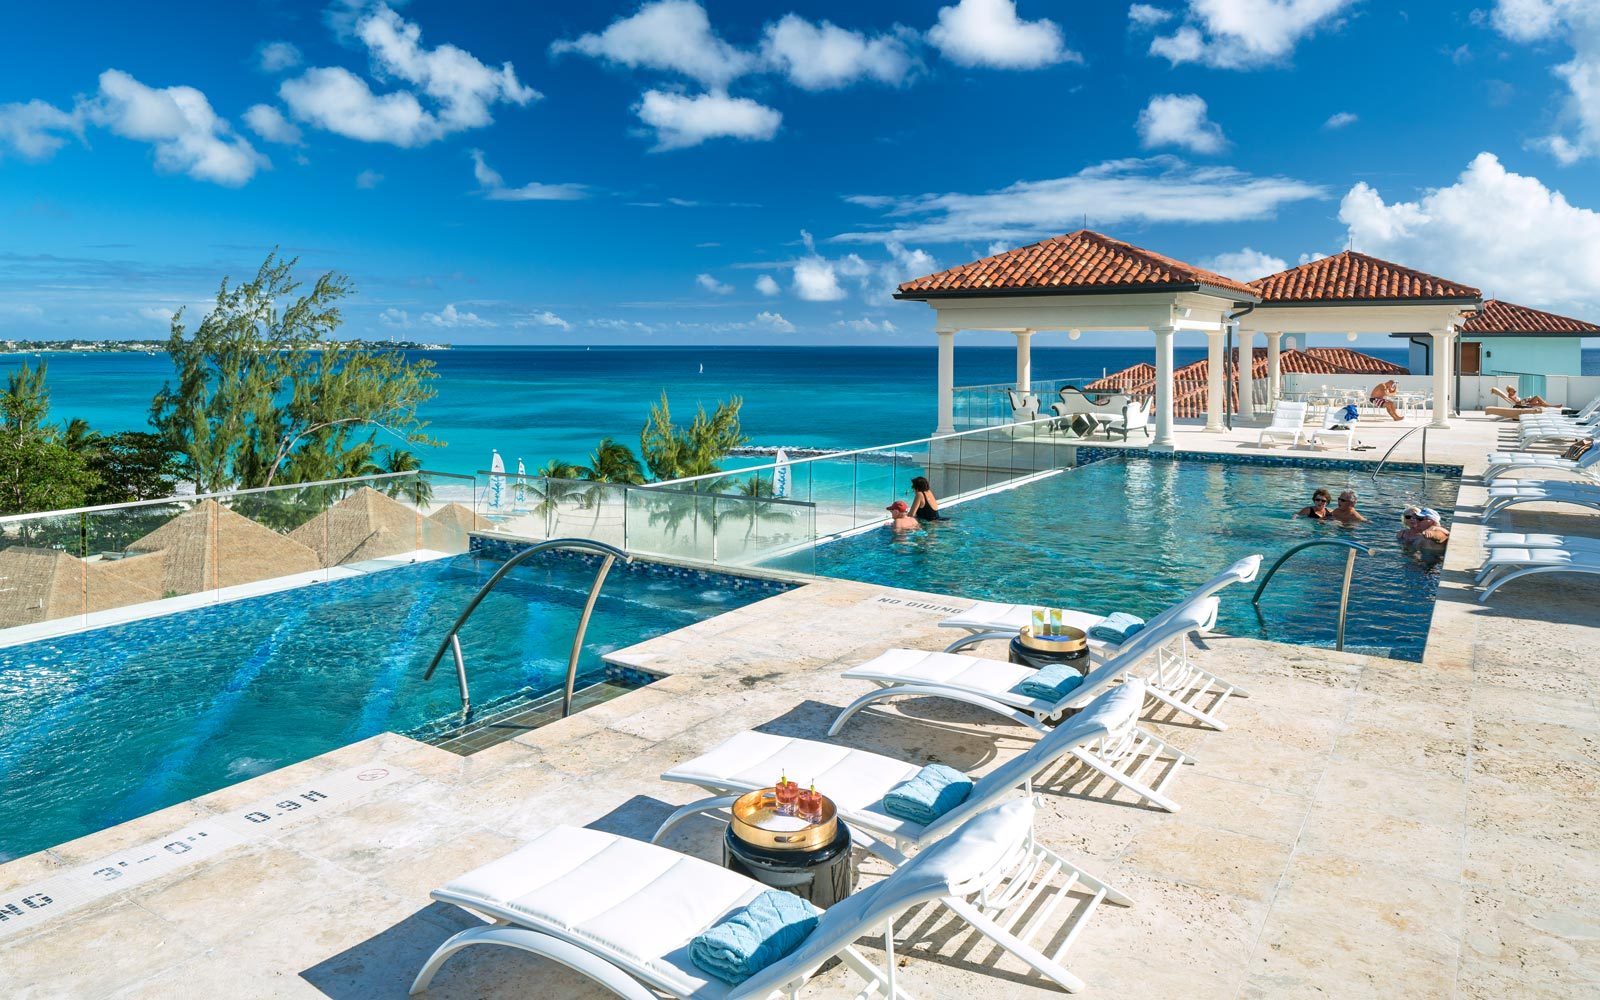 Sandals Resorts Is Giving Away Free Trips to Teachers, Nurses, Mothers, and Military Members Every Day in May